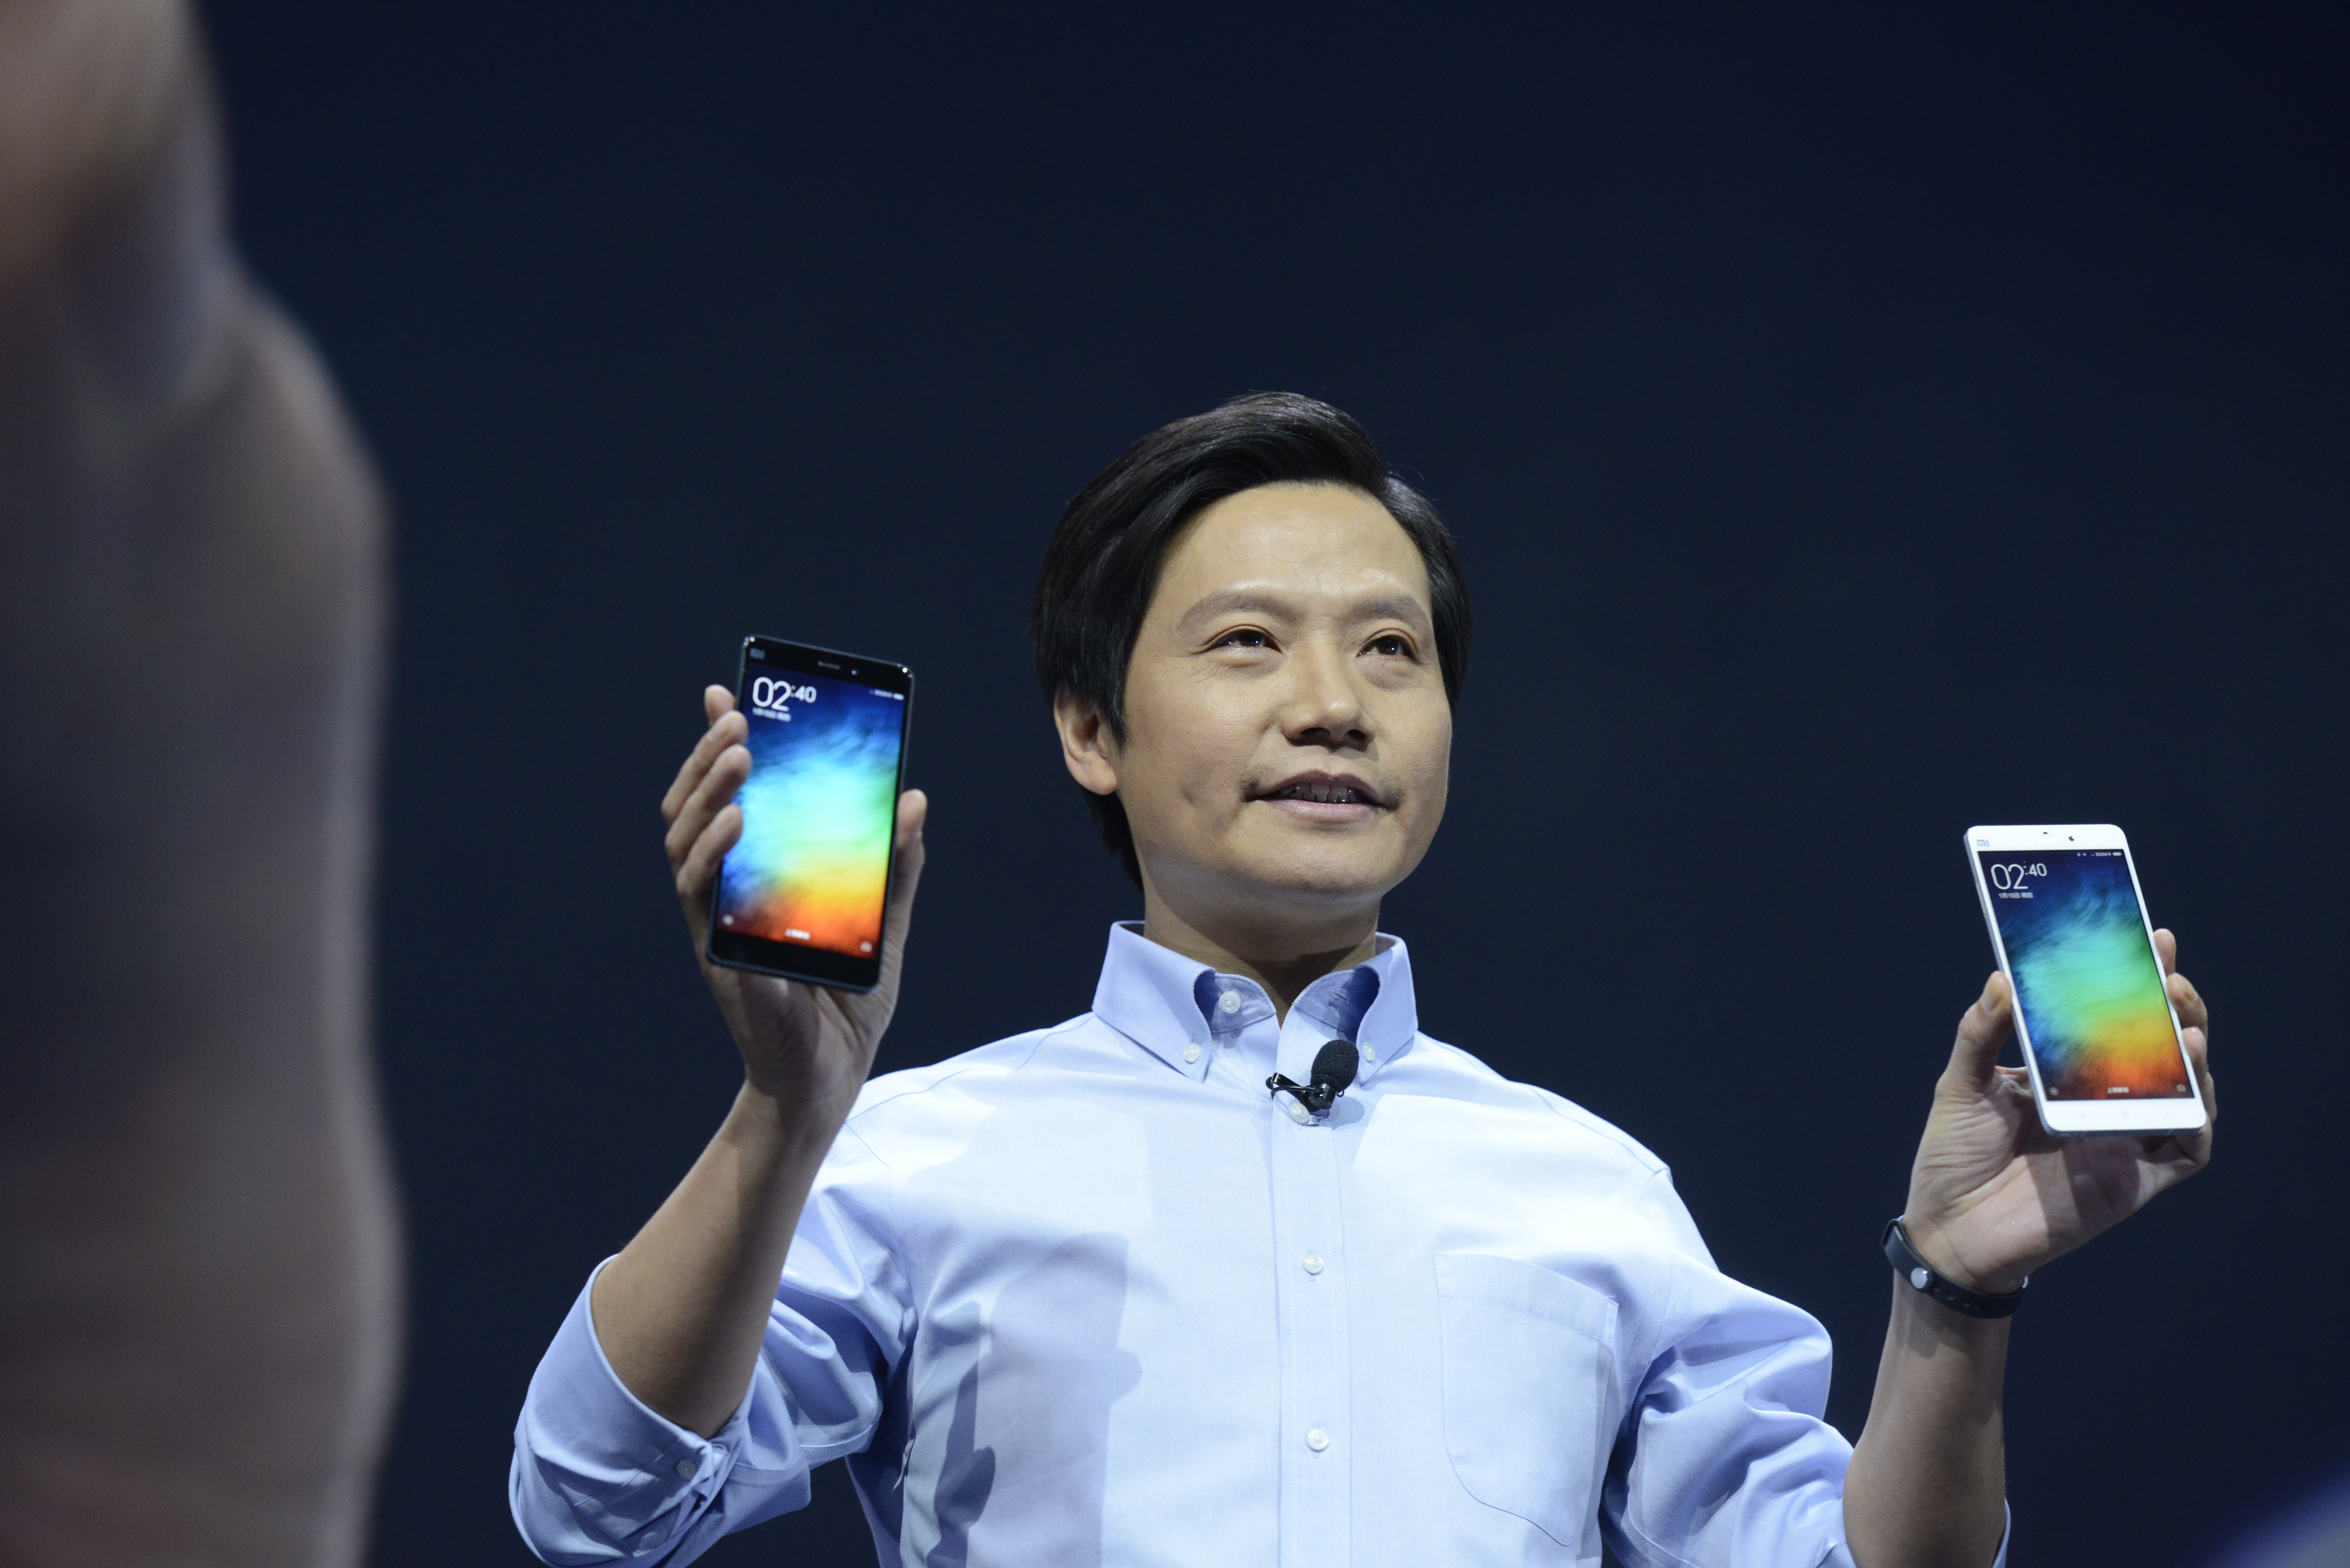 Lei Jun, chairman and CEO of China's Xiaomi Inc. presents the company's new product, the Mi Note on January 15, 2015 in Beijing, China.